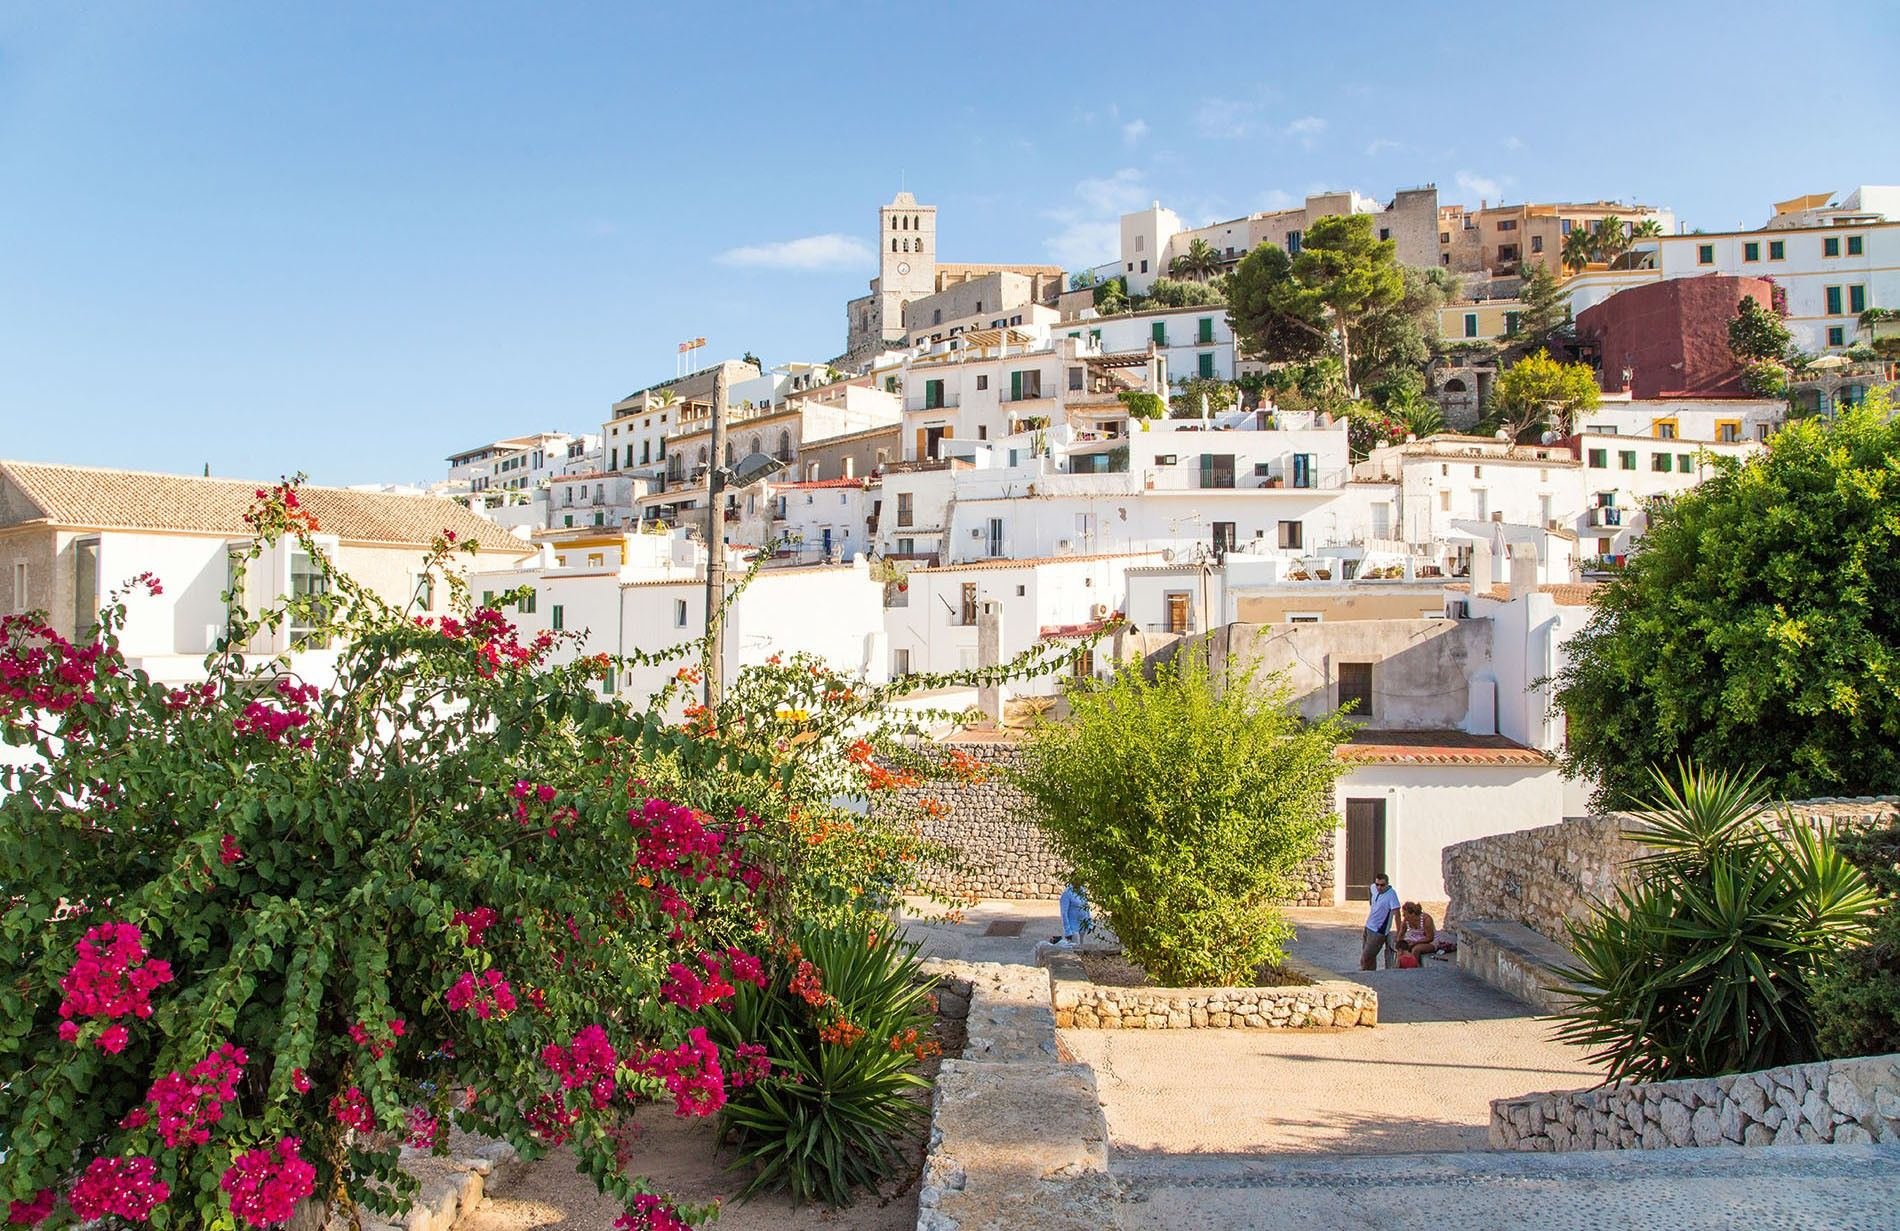 Ibiza's old town, known as Dalt Vila, is a maze of white-painted houses flushed pink with bougainvillea.